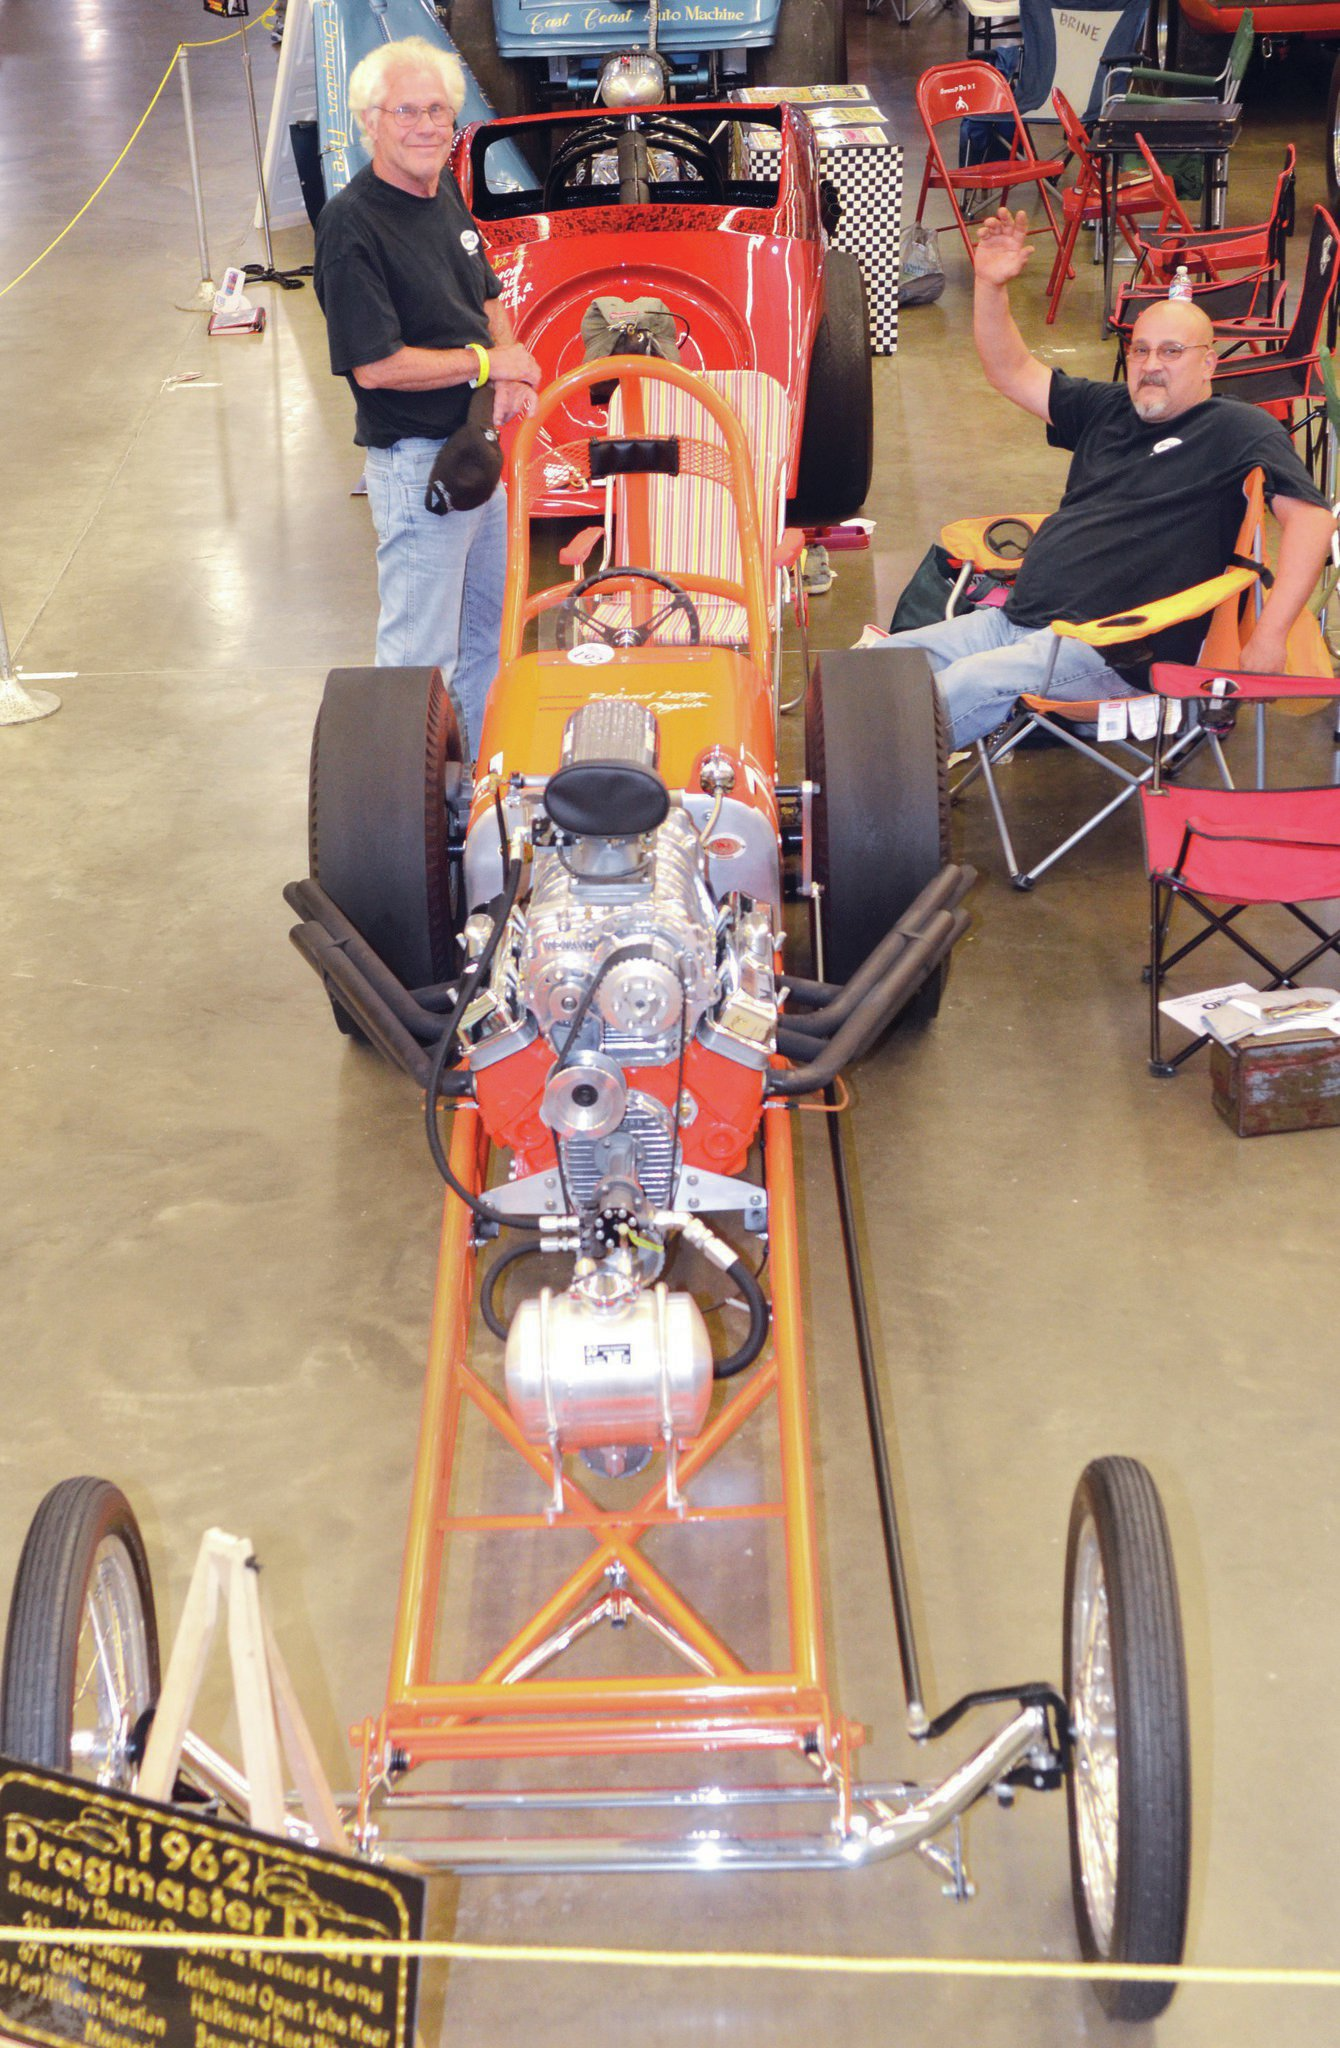 York always has a number of vintage dragsters on display. Among the coolest this year was this original '62 Dragmaster that was once raced by a couple of guys from the islands named Roland Leong and Danny Ongais. It was on hand courtesy of Frank Morawski of Bel Air, Maryland.